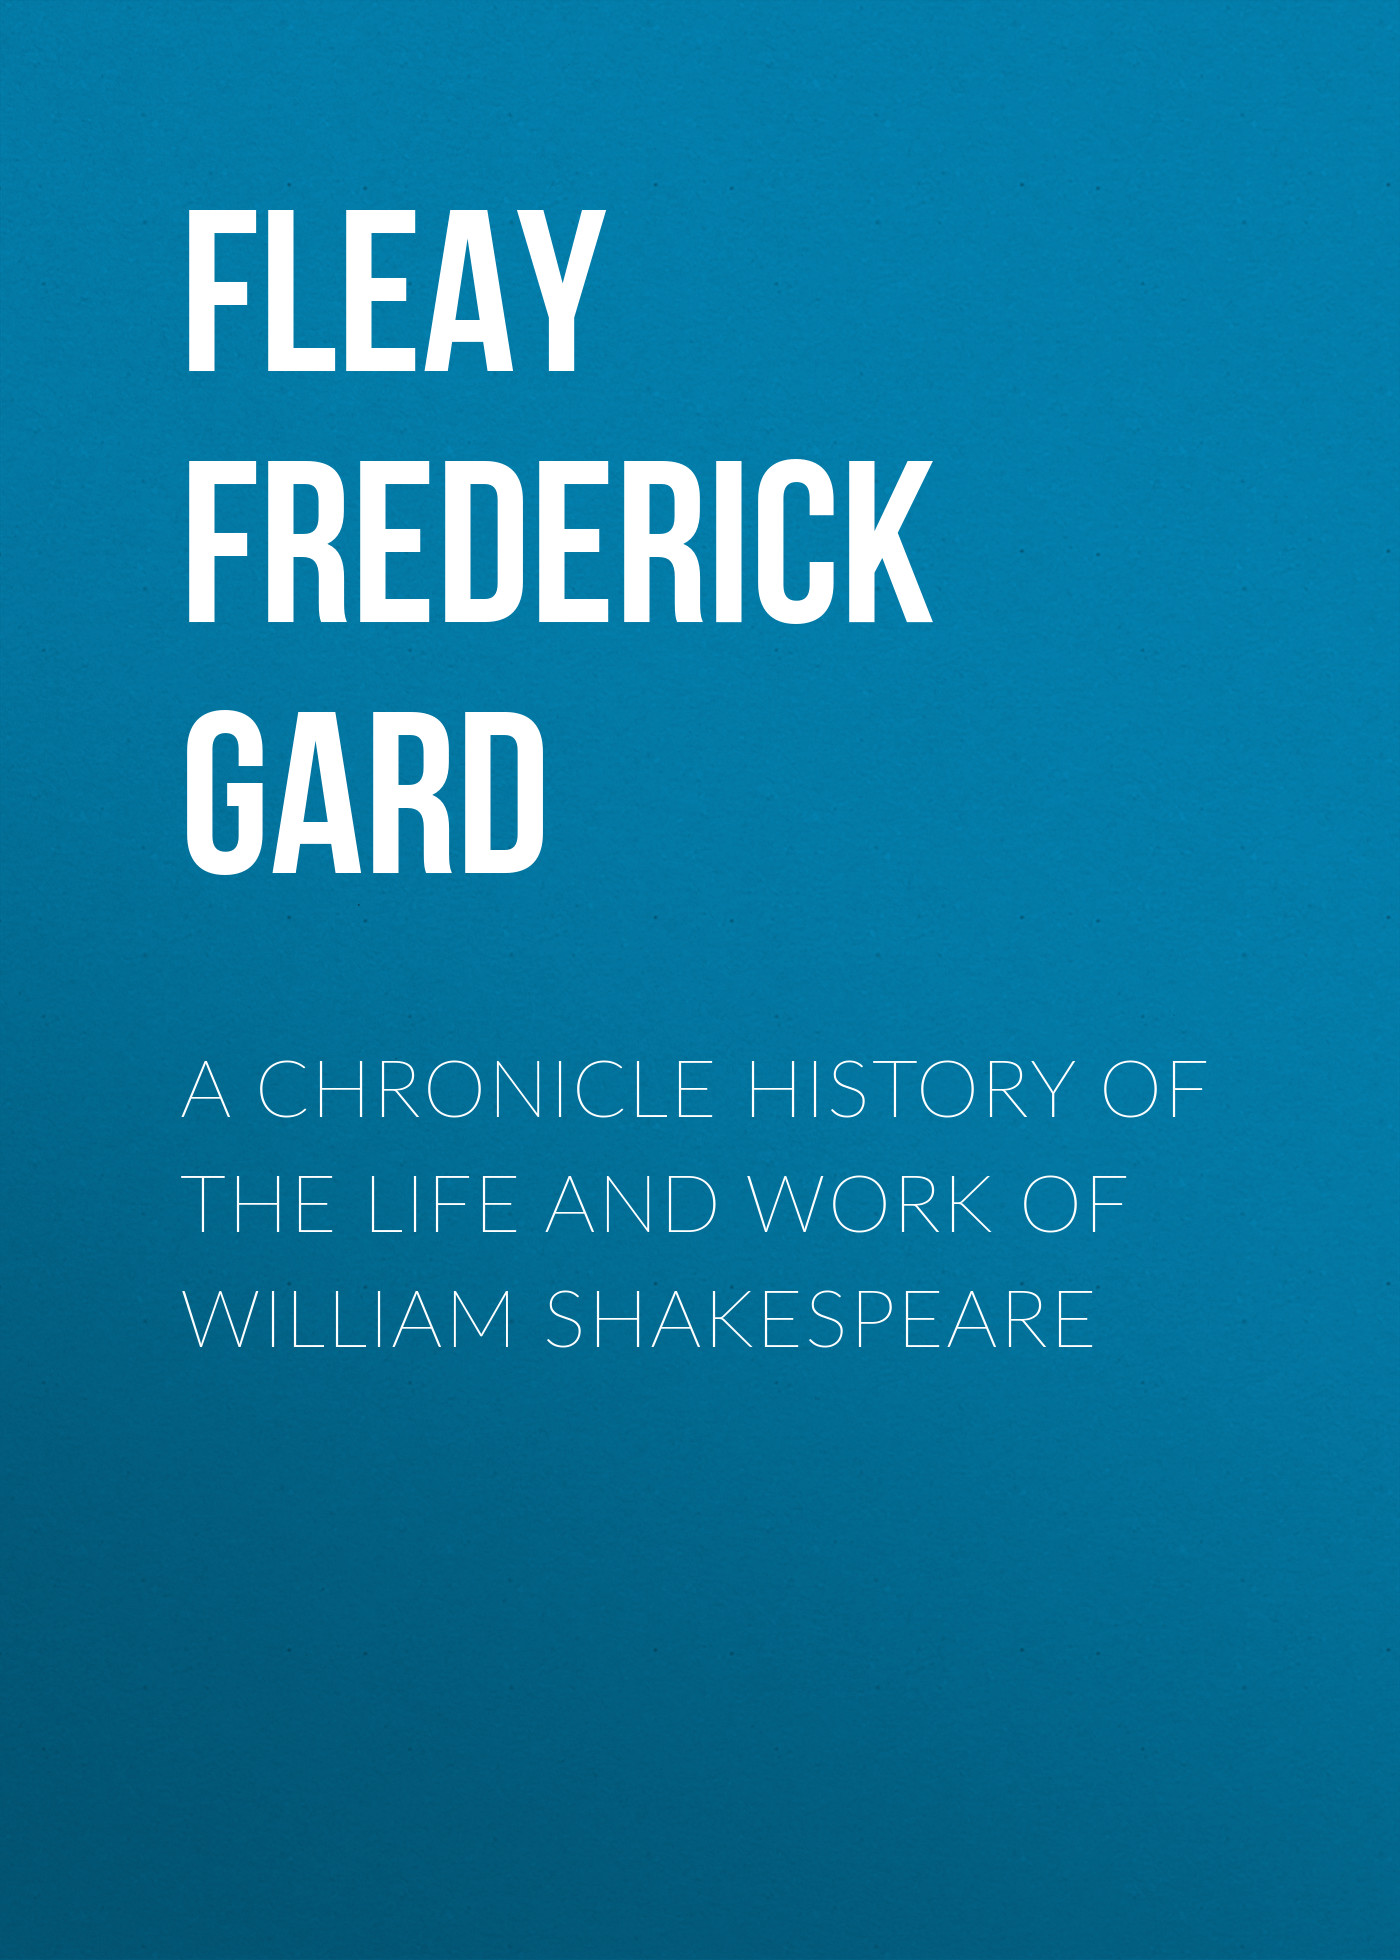 Fleay Frederick Gard A Chronicle History of the Life and Work of William Shakespeare cd iron maiden a matter of life and death